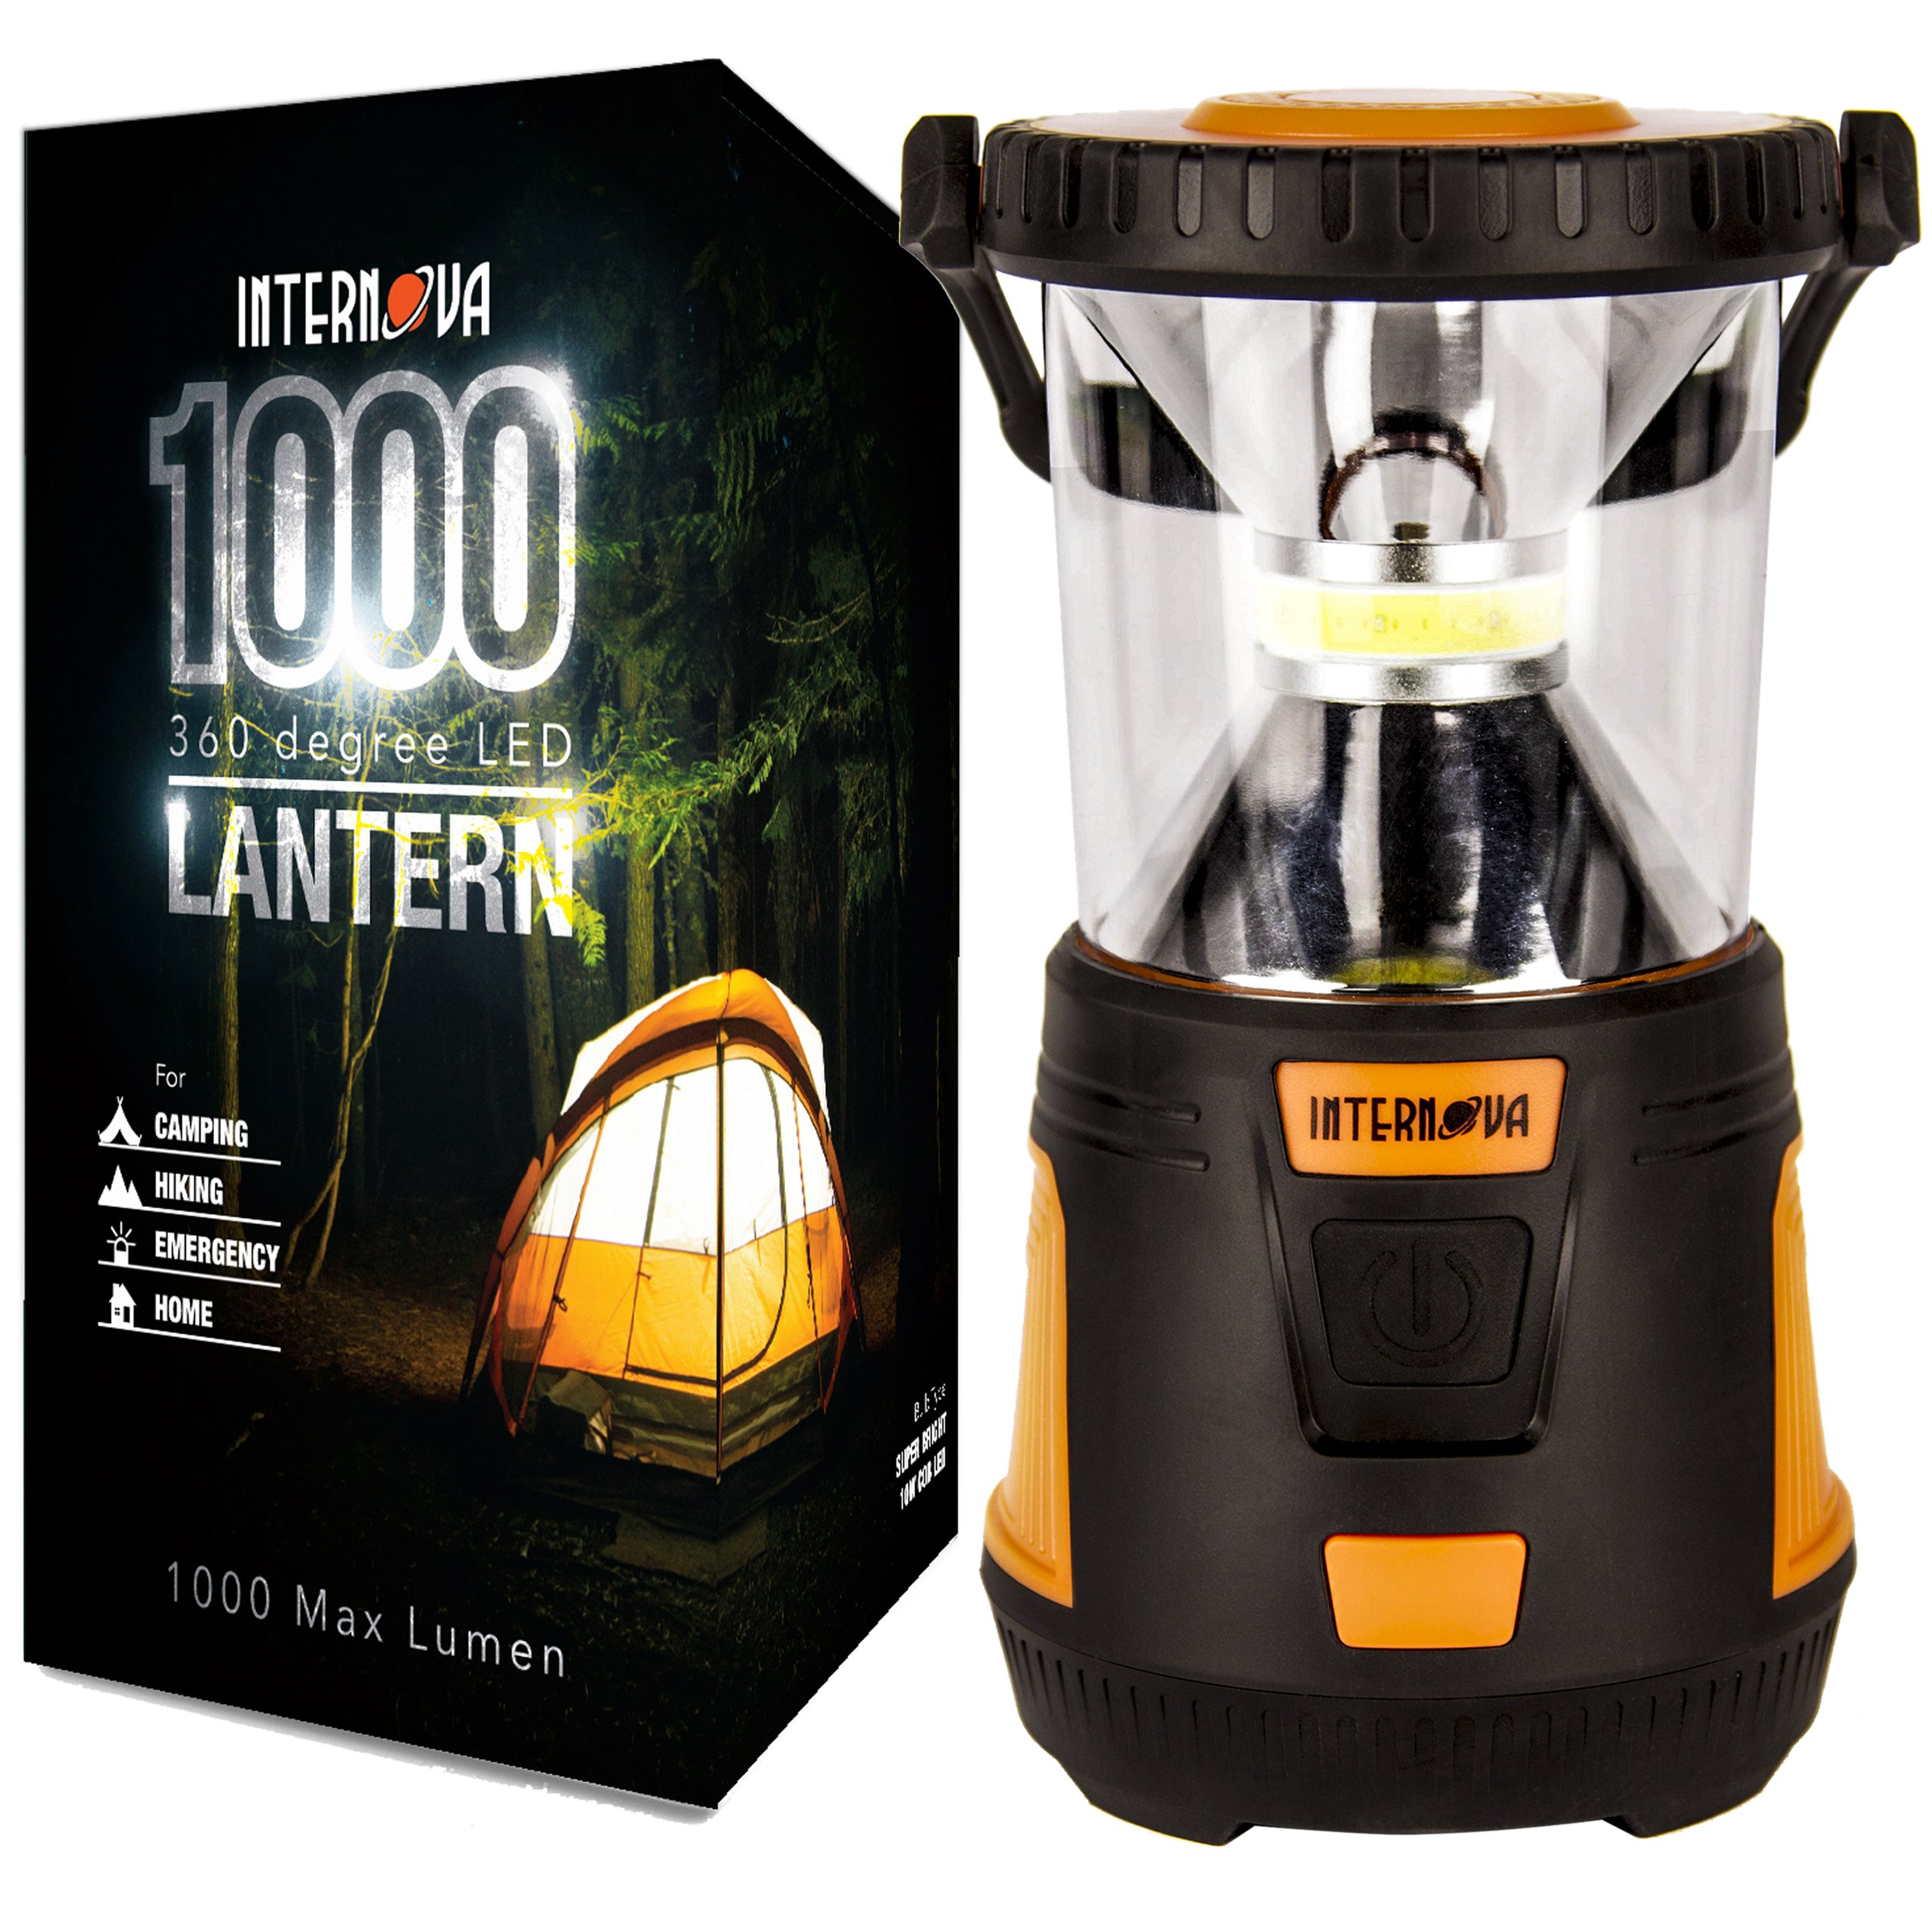 Internova 1000 LED Camping Lantern - Massive Brightness with Fully Adjustable 360 Arc Lighting - Emergency - Backpacking - Construction - Hiking - Auto - Home - College (Cadmium Orange) by Internova